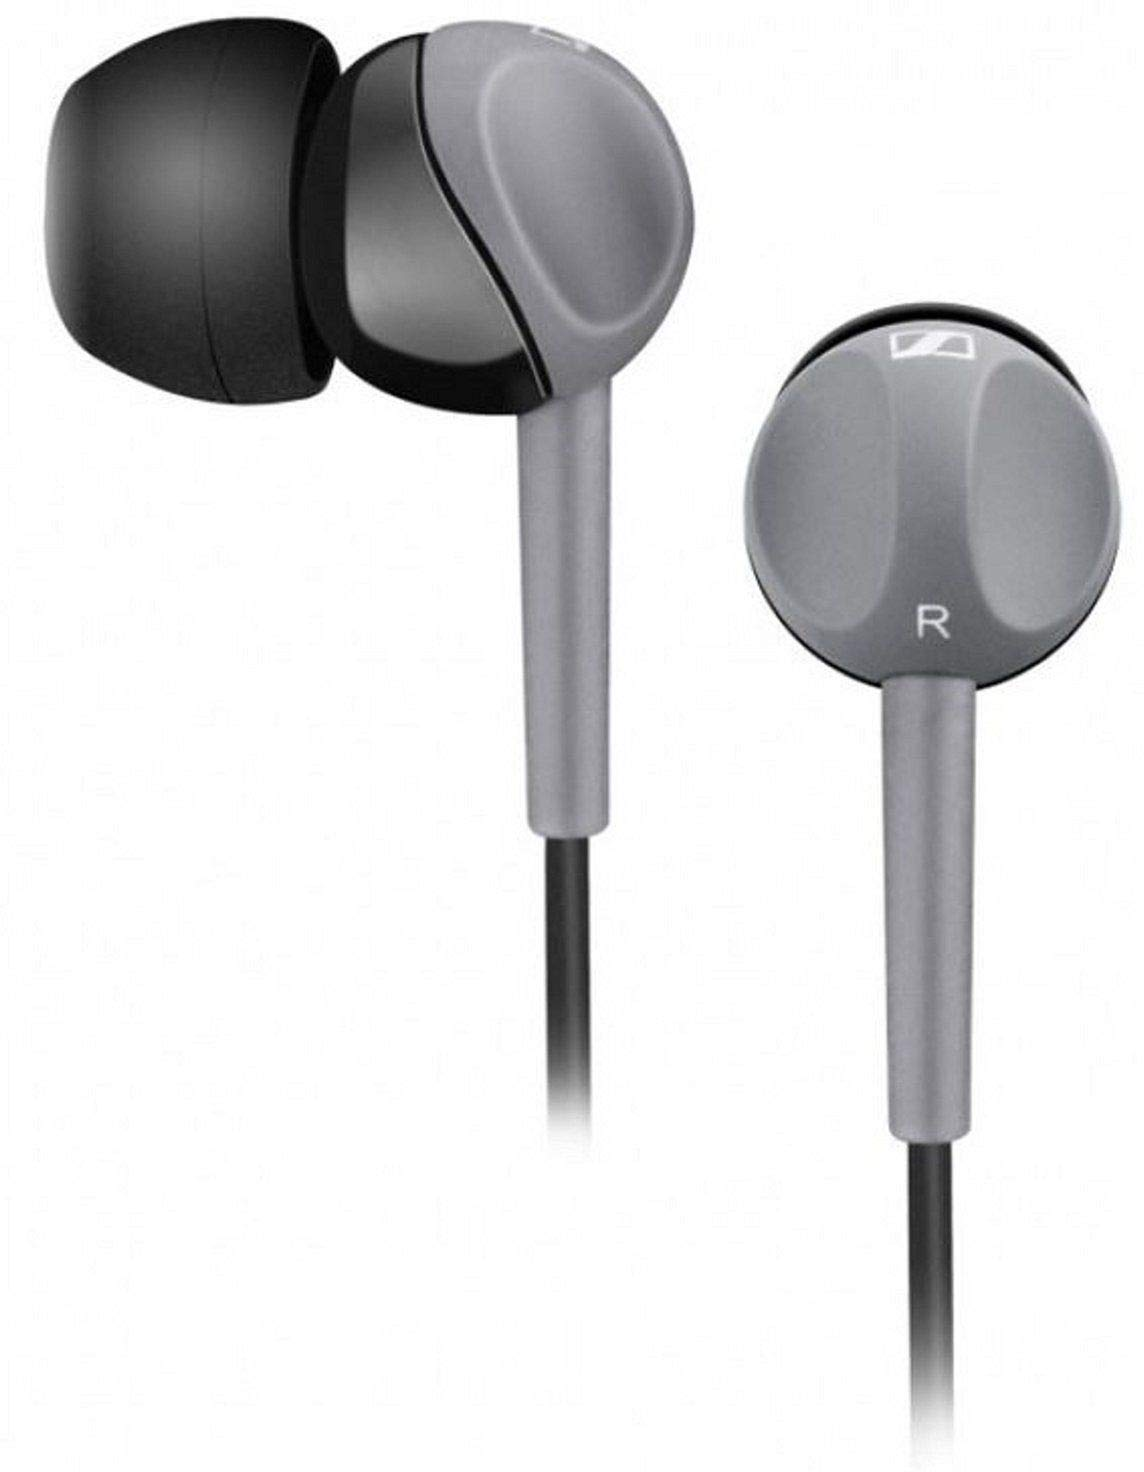 One of the top quality earphones from Sennheiser under Rs 1000 in india